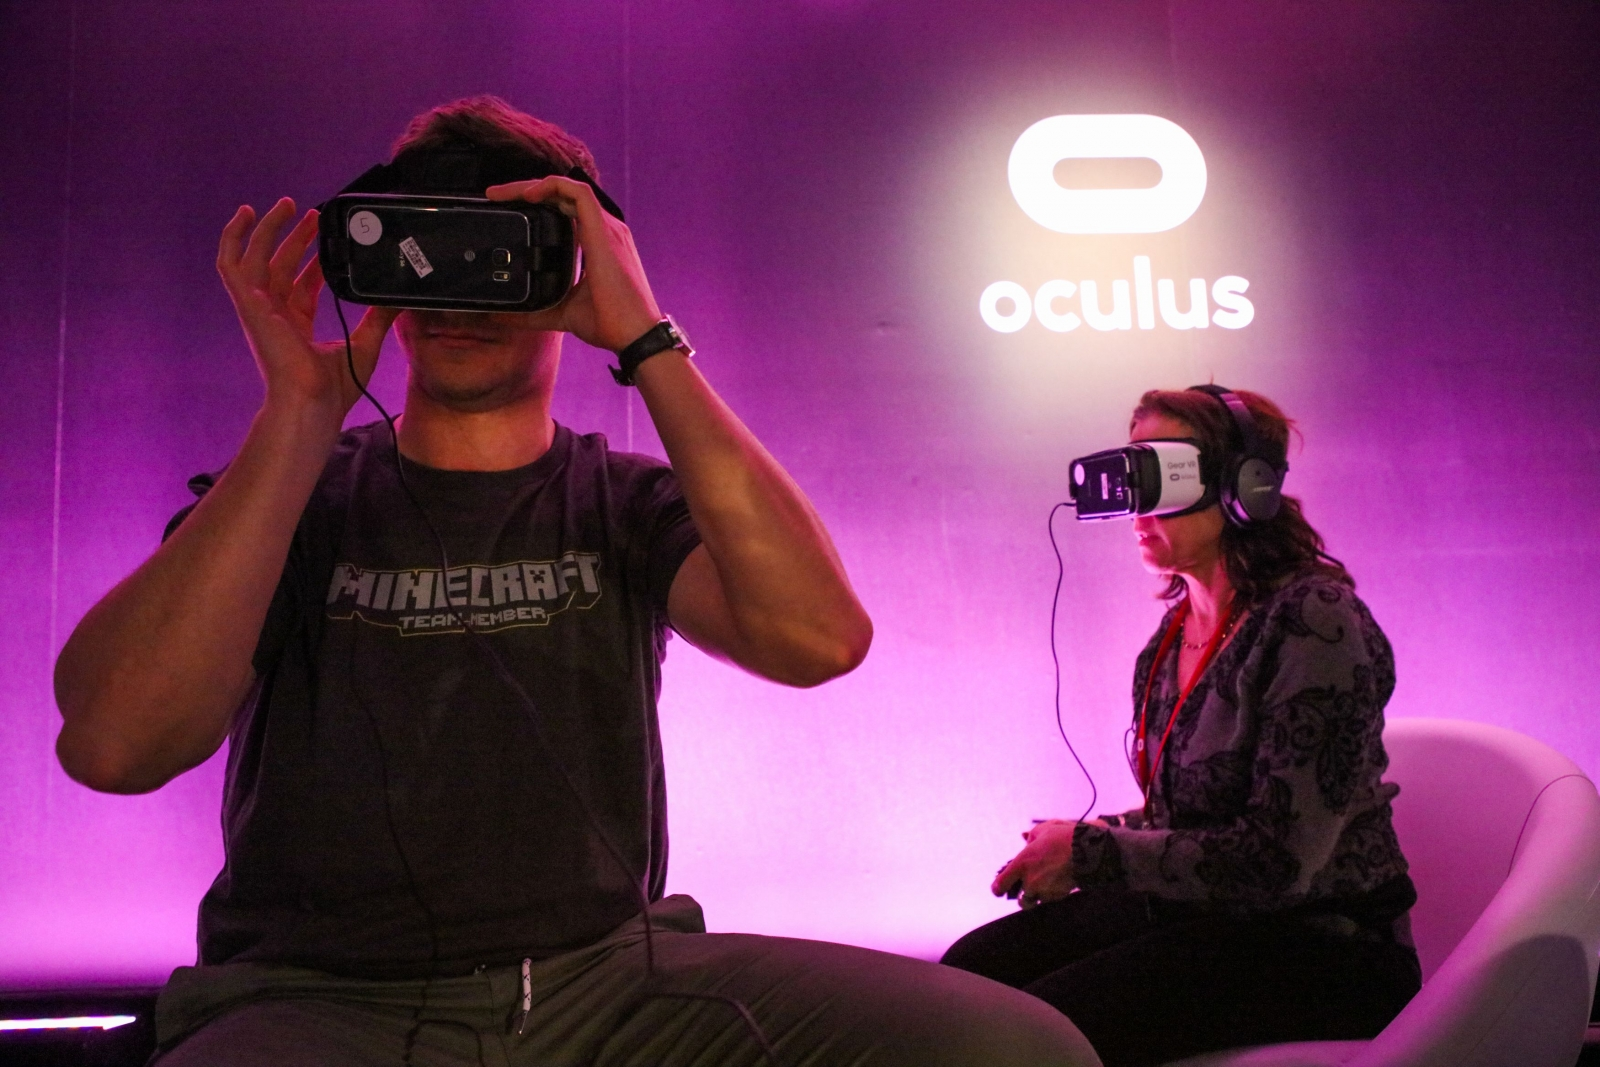 Oculus Rift update makes piracy easier